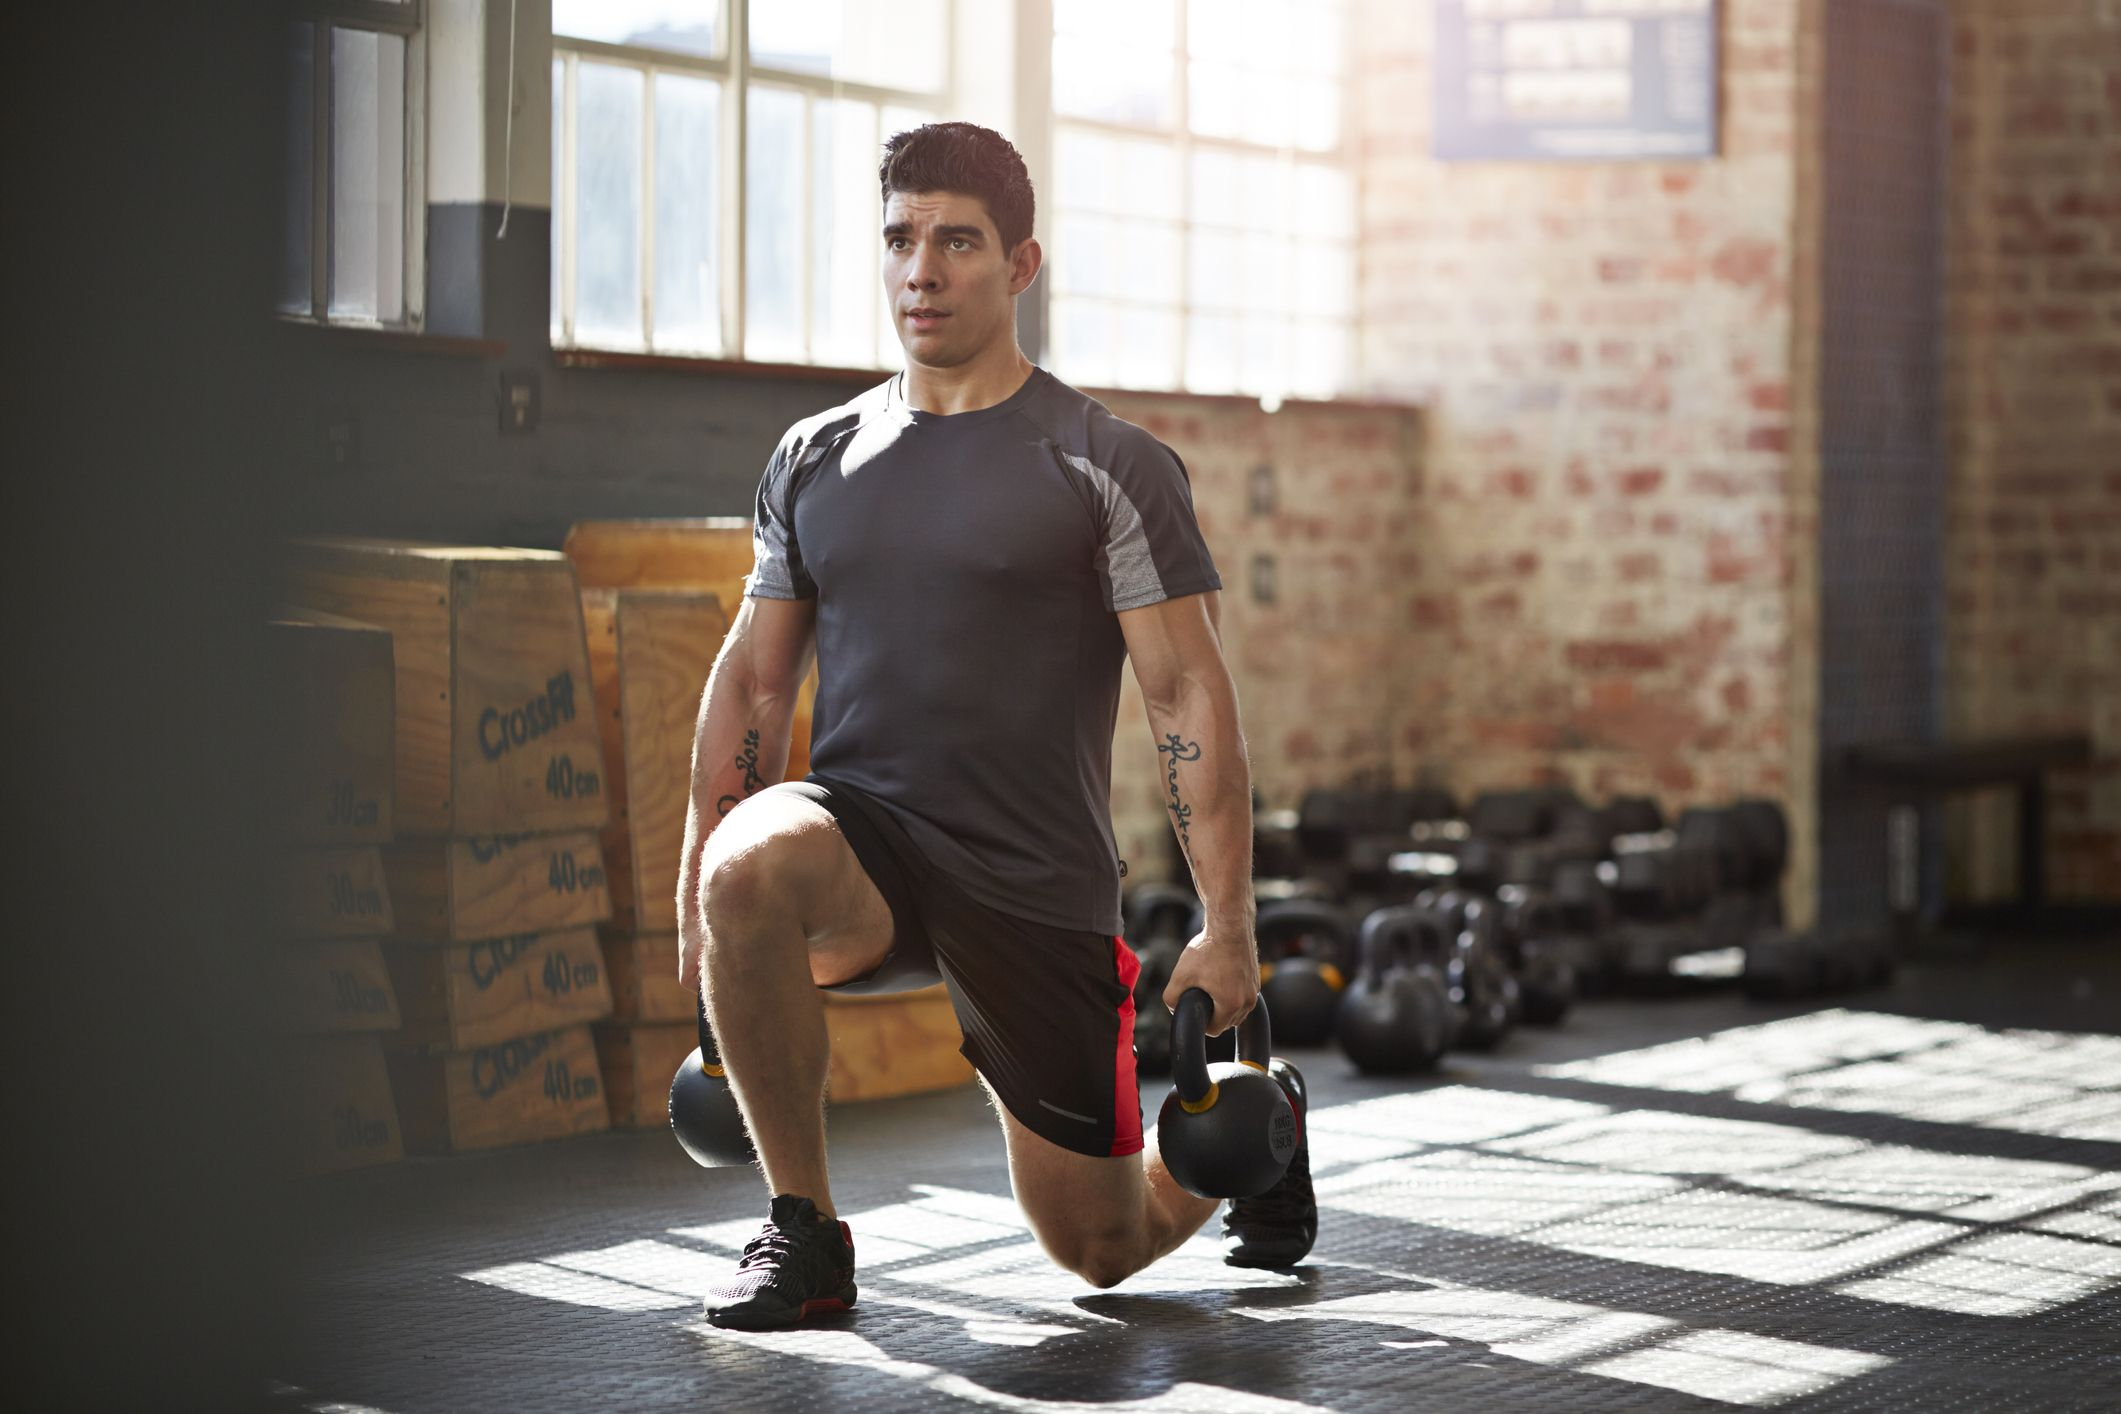 Is It Better to Do Cardio Before or After Weight Training?